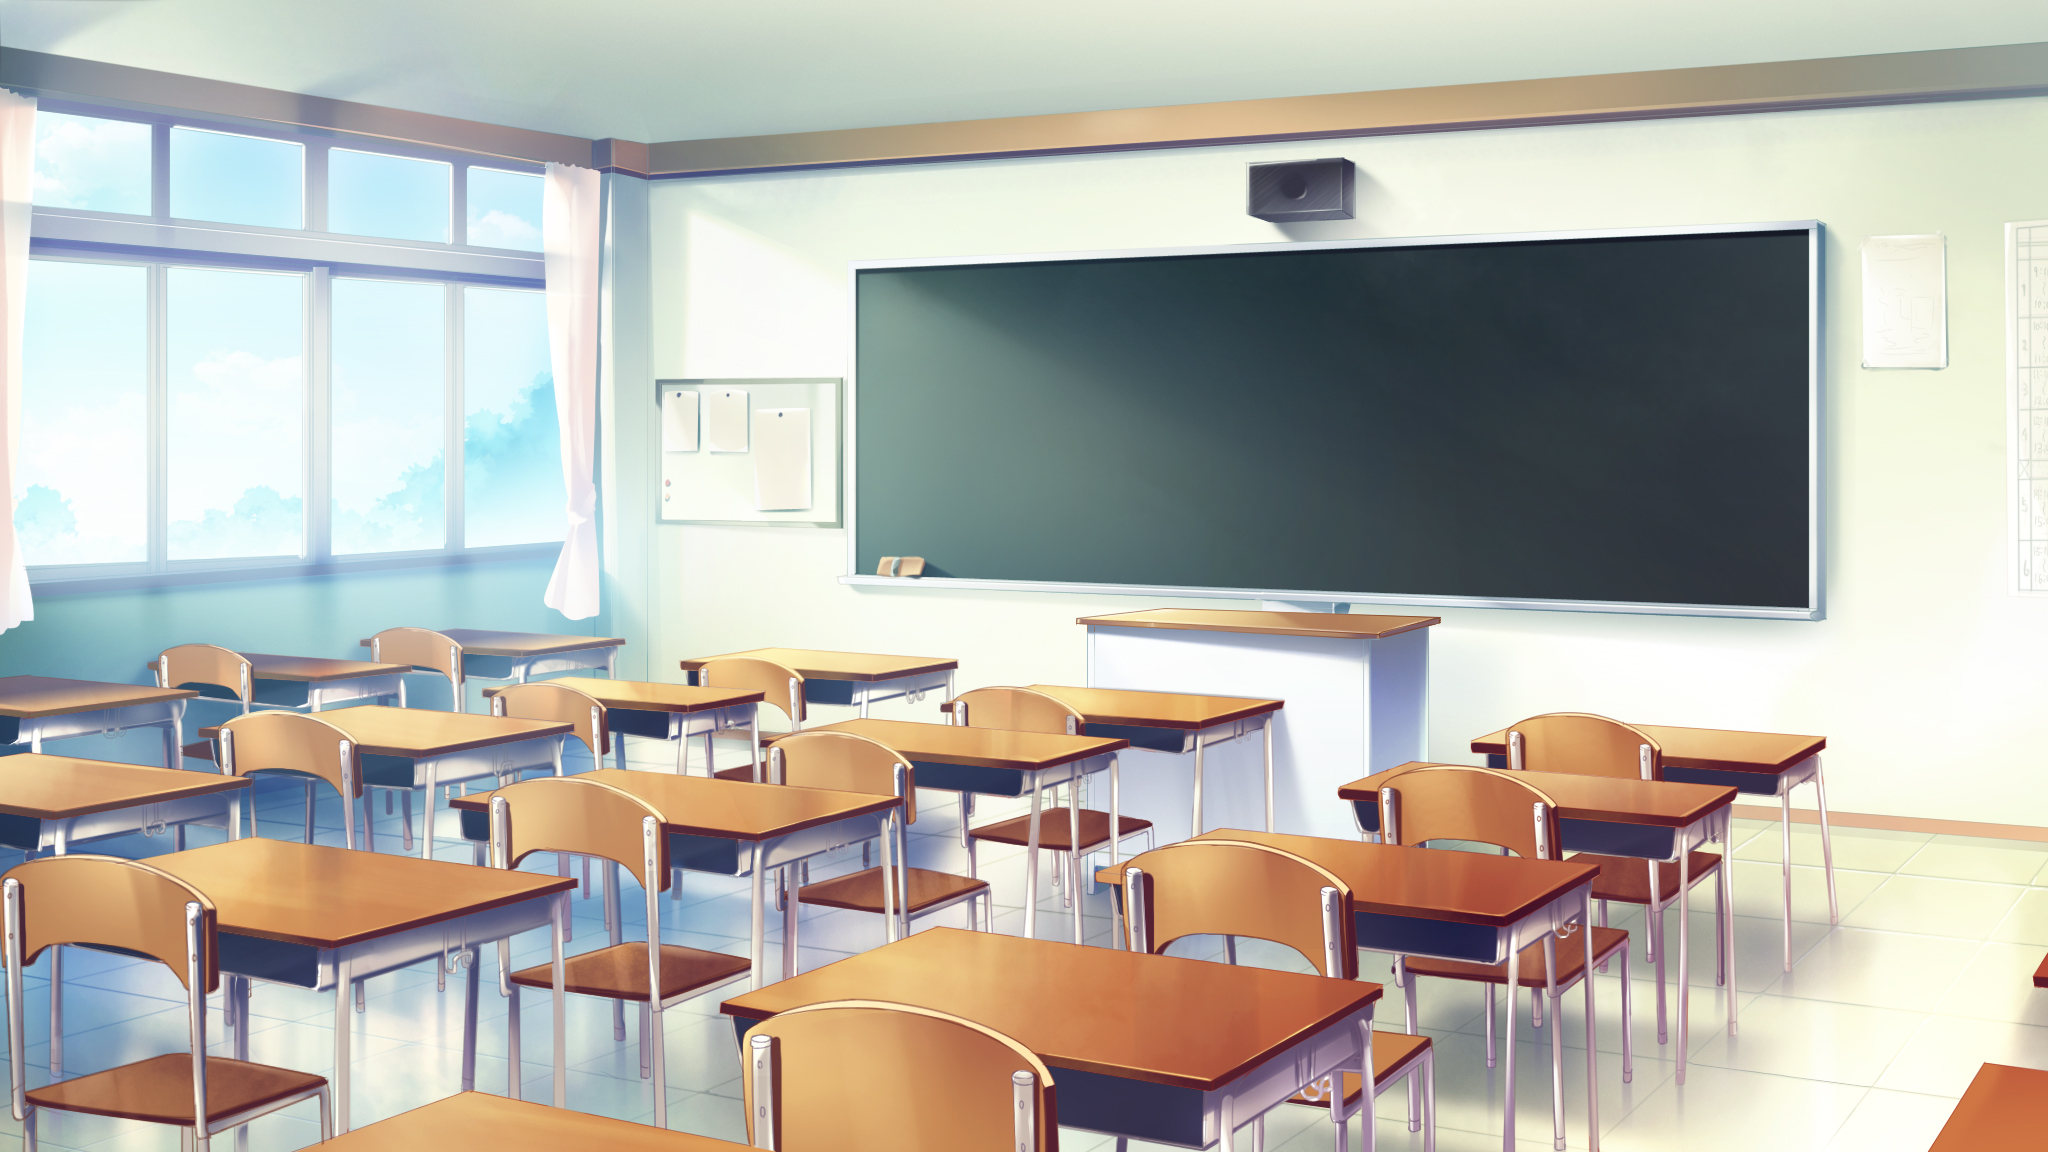 50 School Hd Wallpapers Background Images Wallpaper Abyss